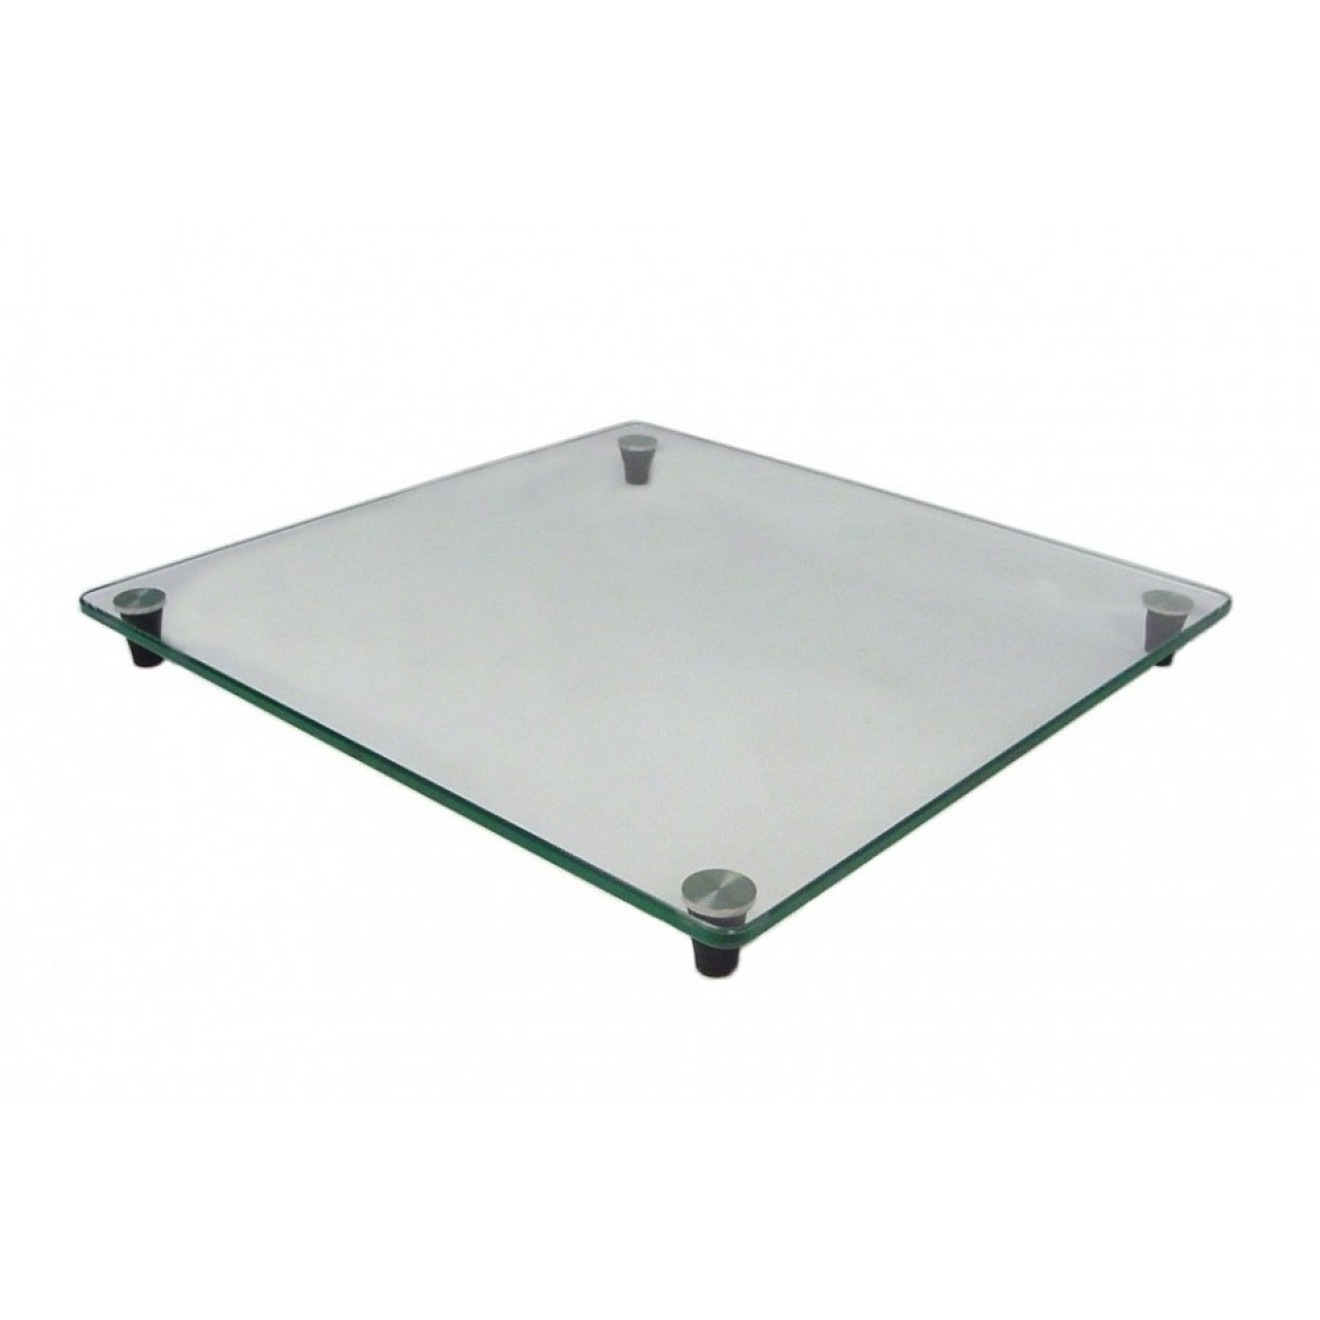 Safety glass table top 30 x 30 12 x 12 cm with rubber for 12 x 30 table